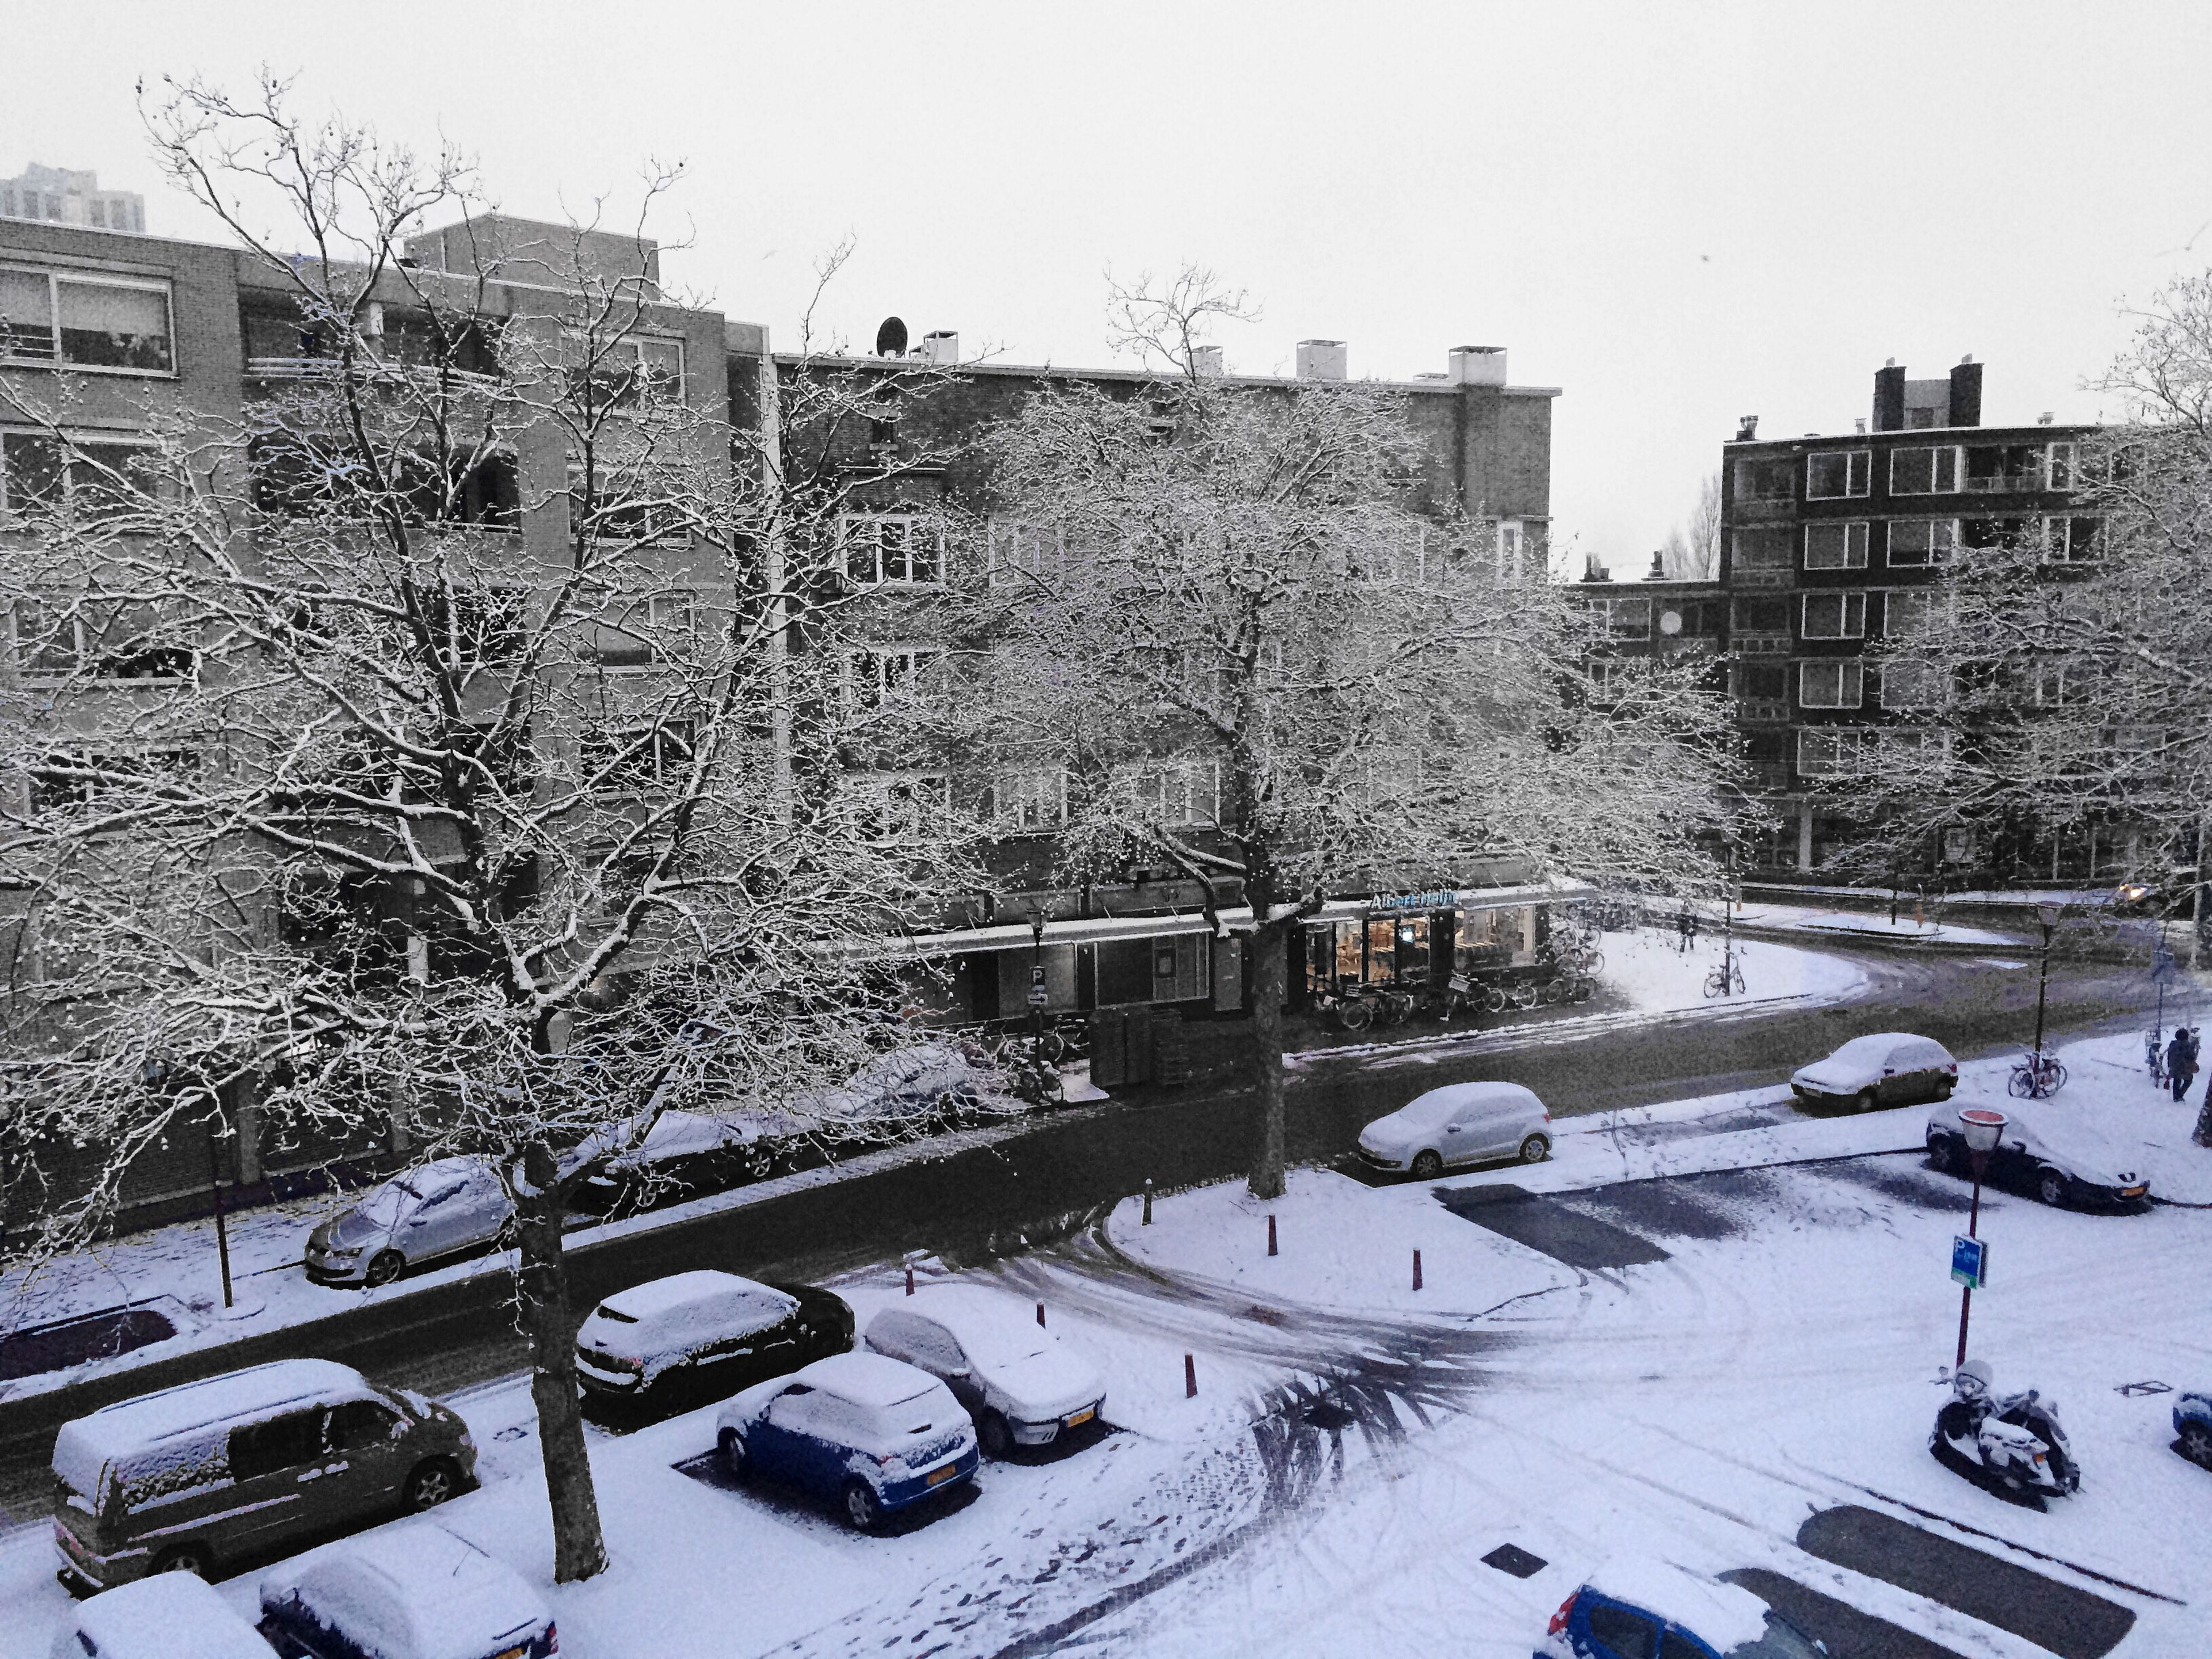 snow, winter, cold temperature, building exterior, architecture, transportation, built structure, land vehicle, season, car, weather, mode of transport, street, road, city, covering, high angle view, clear sky, day, bare tree